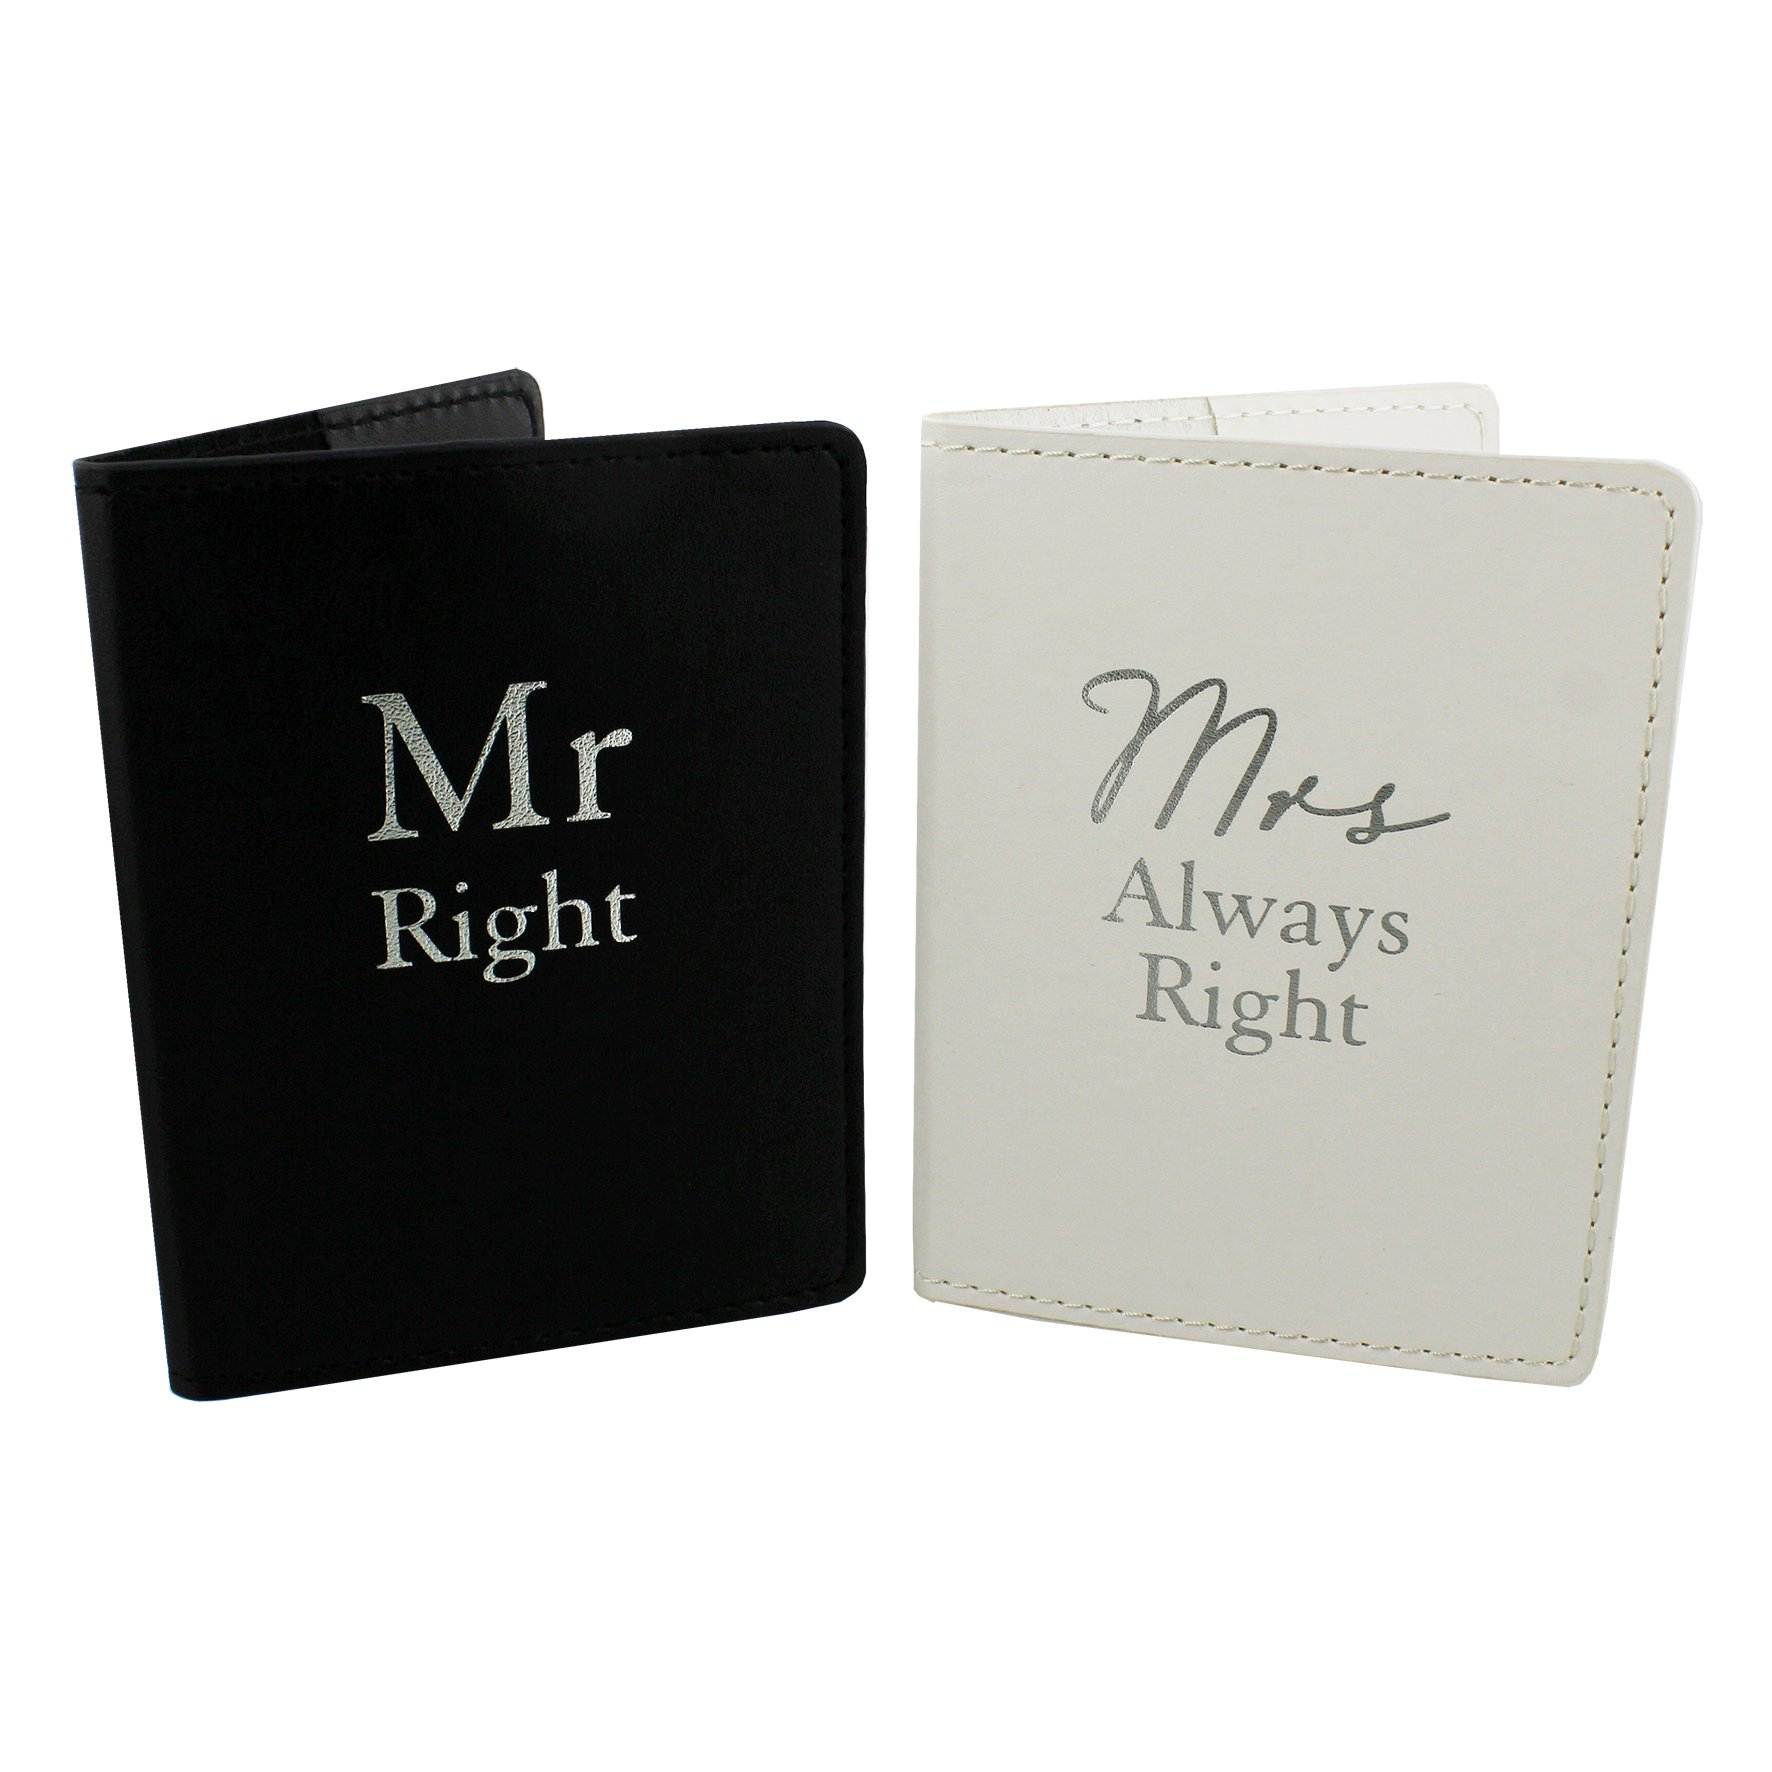 Oaktree Gifts Mr Right & Mrs Always Right Set 2 Passport Holders by Oaktree Gifts